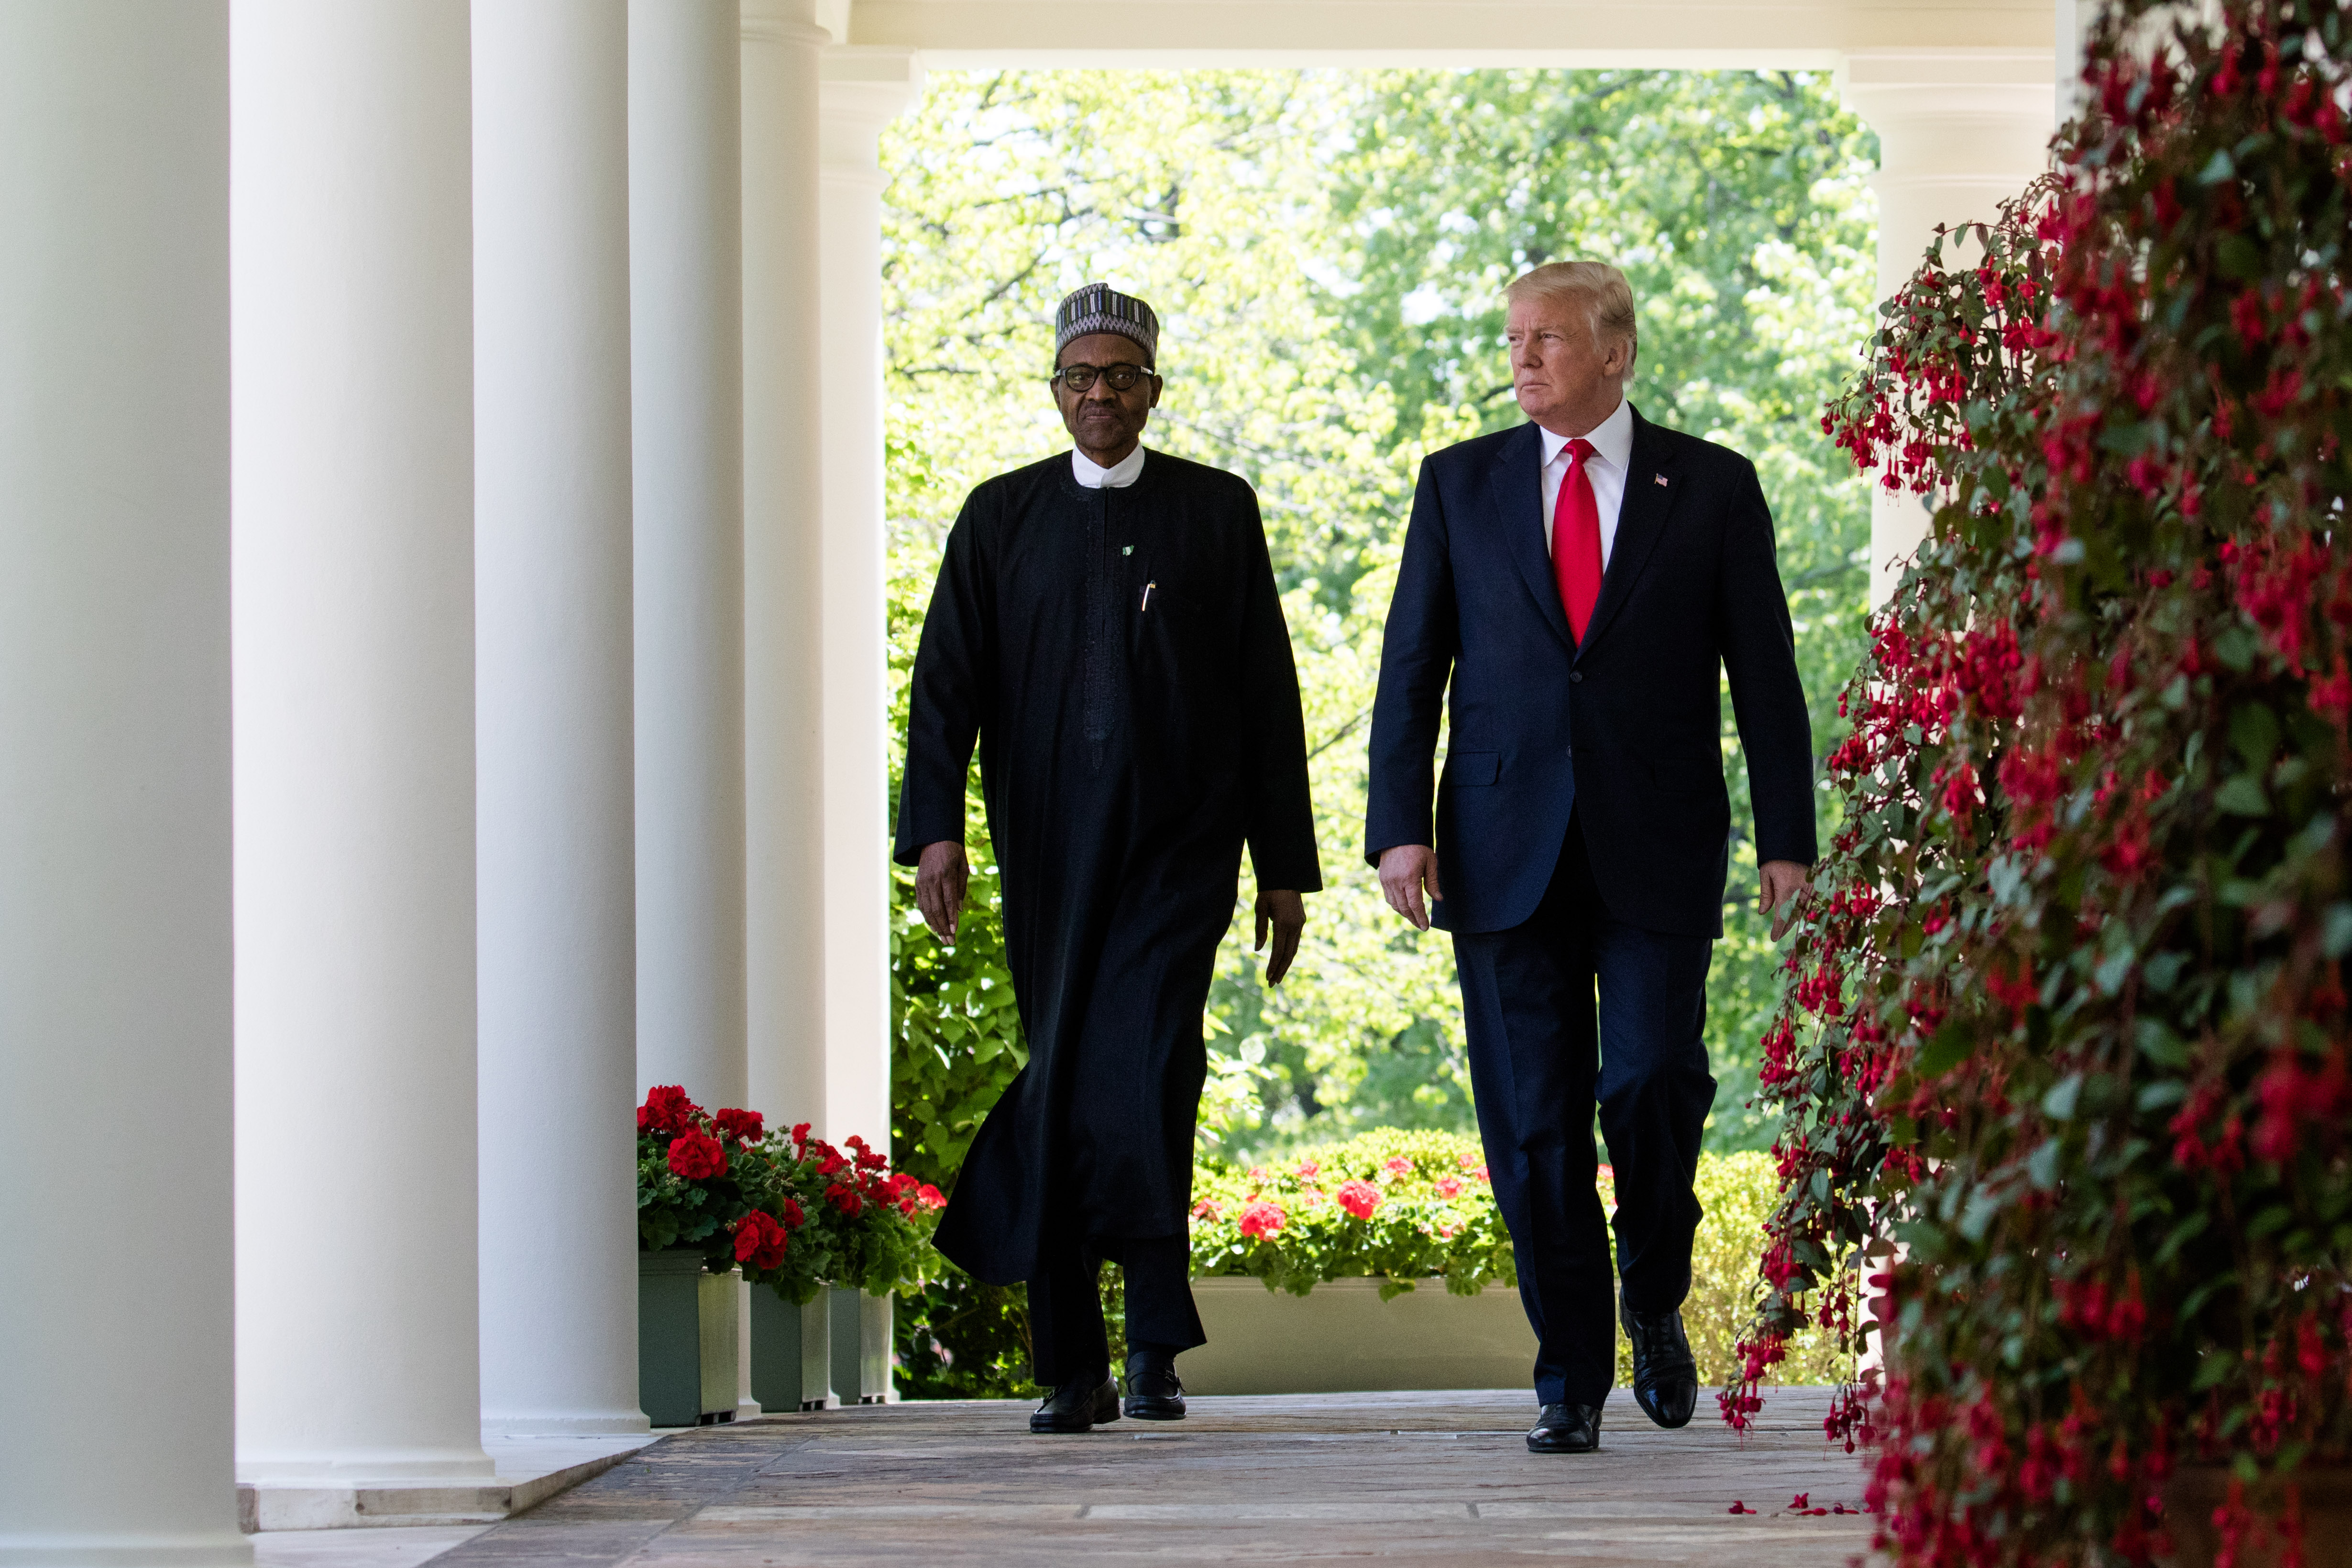 Nigerian President 'Not Sure' if President Trump Made Slurs About Developing Countries